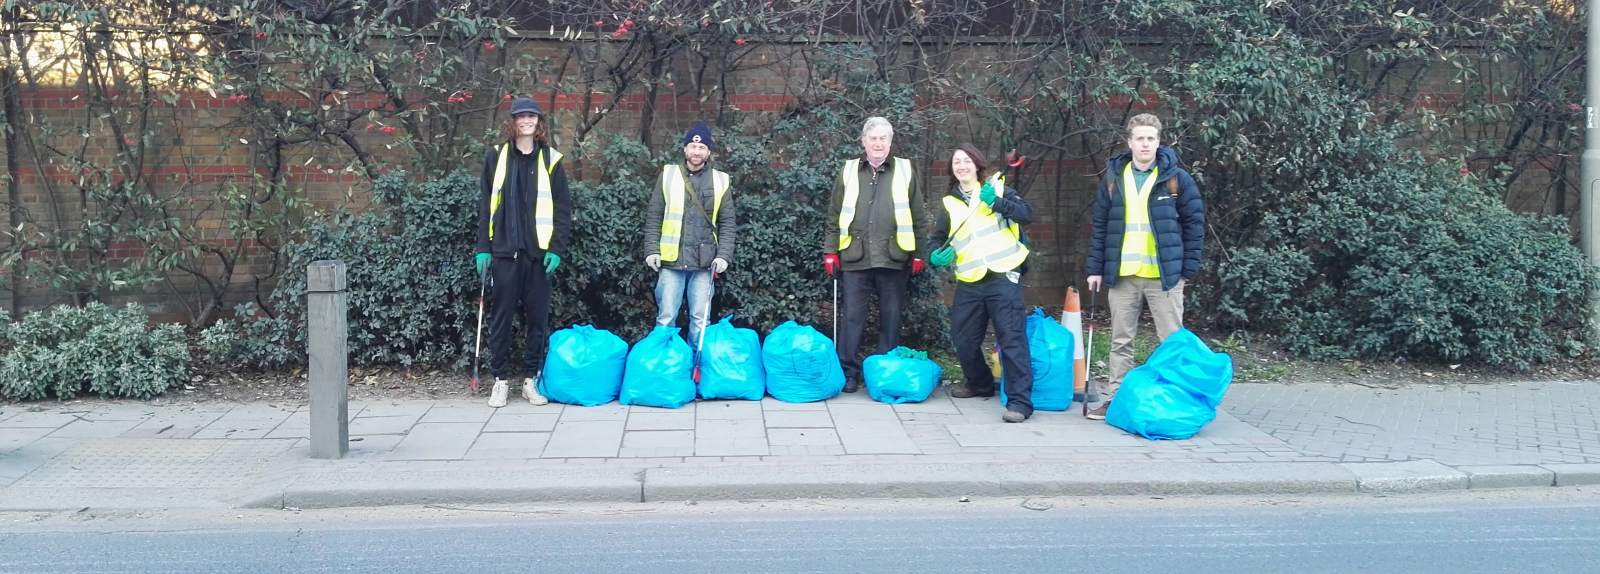 Great-British-Spring-Clean-2019-in-Battersea-Battersea-Park-Businesses